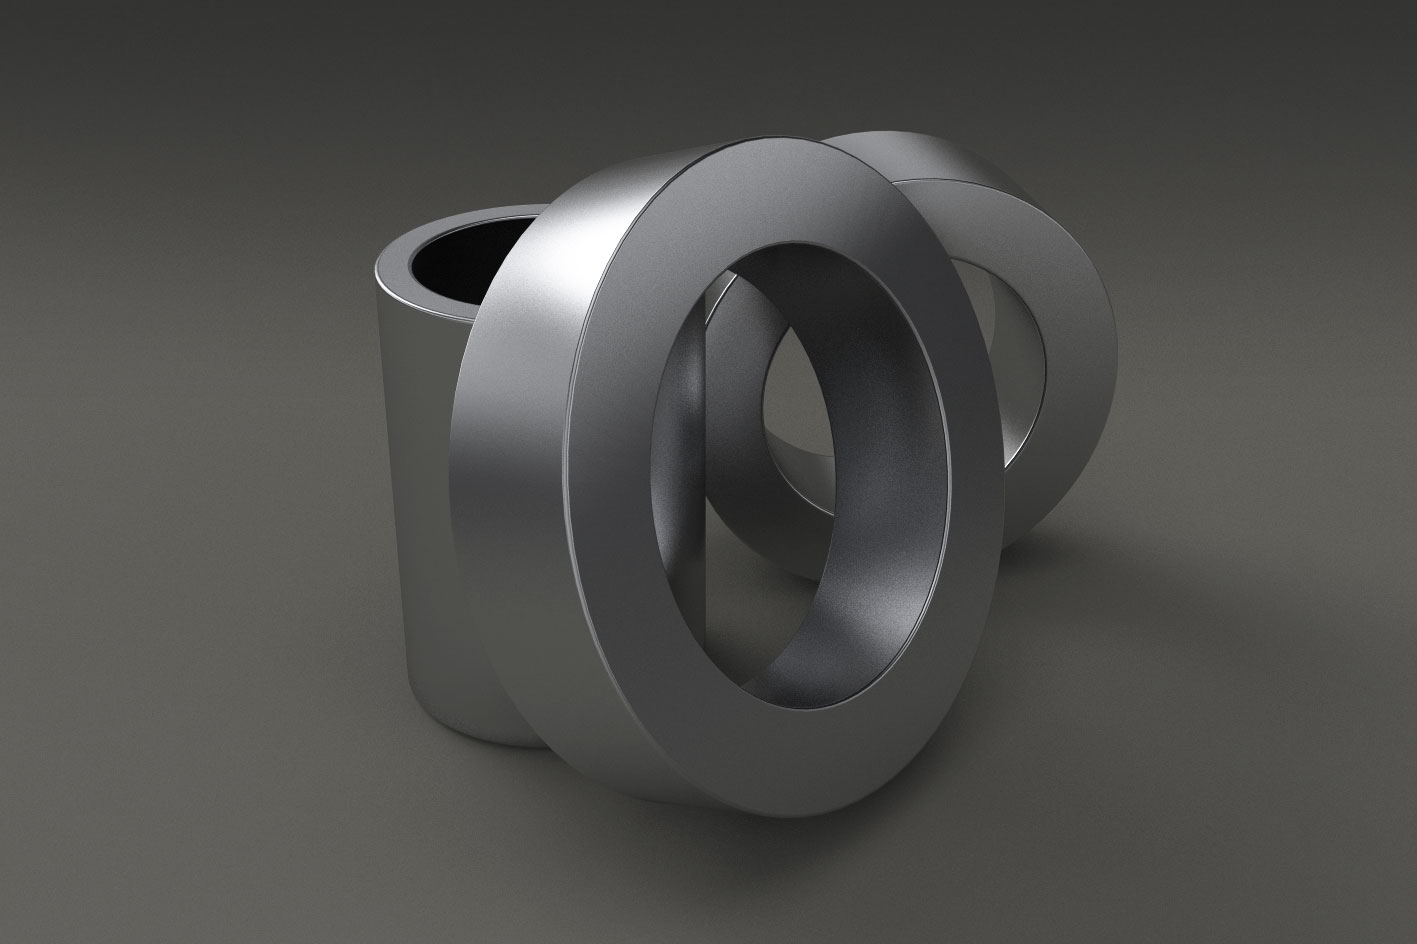 Rings and cylindrical hollows